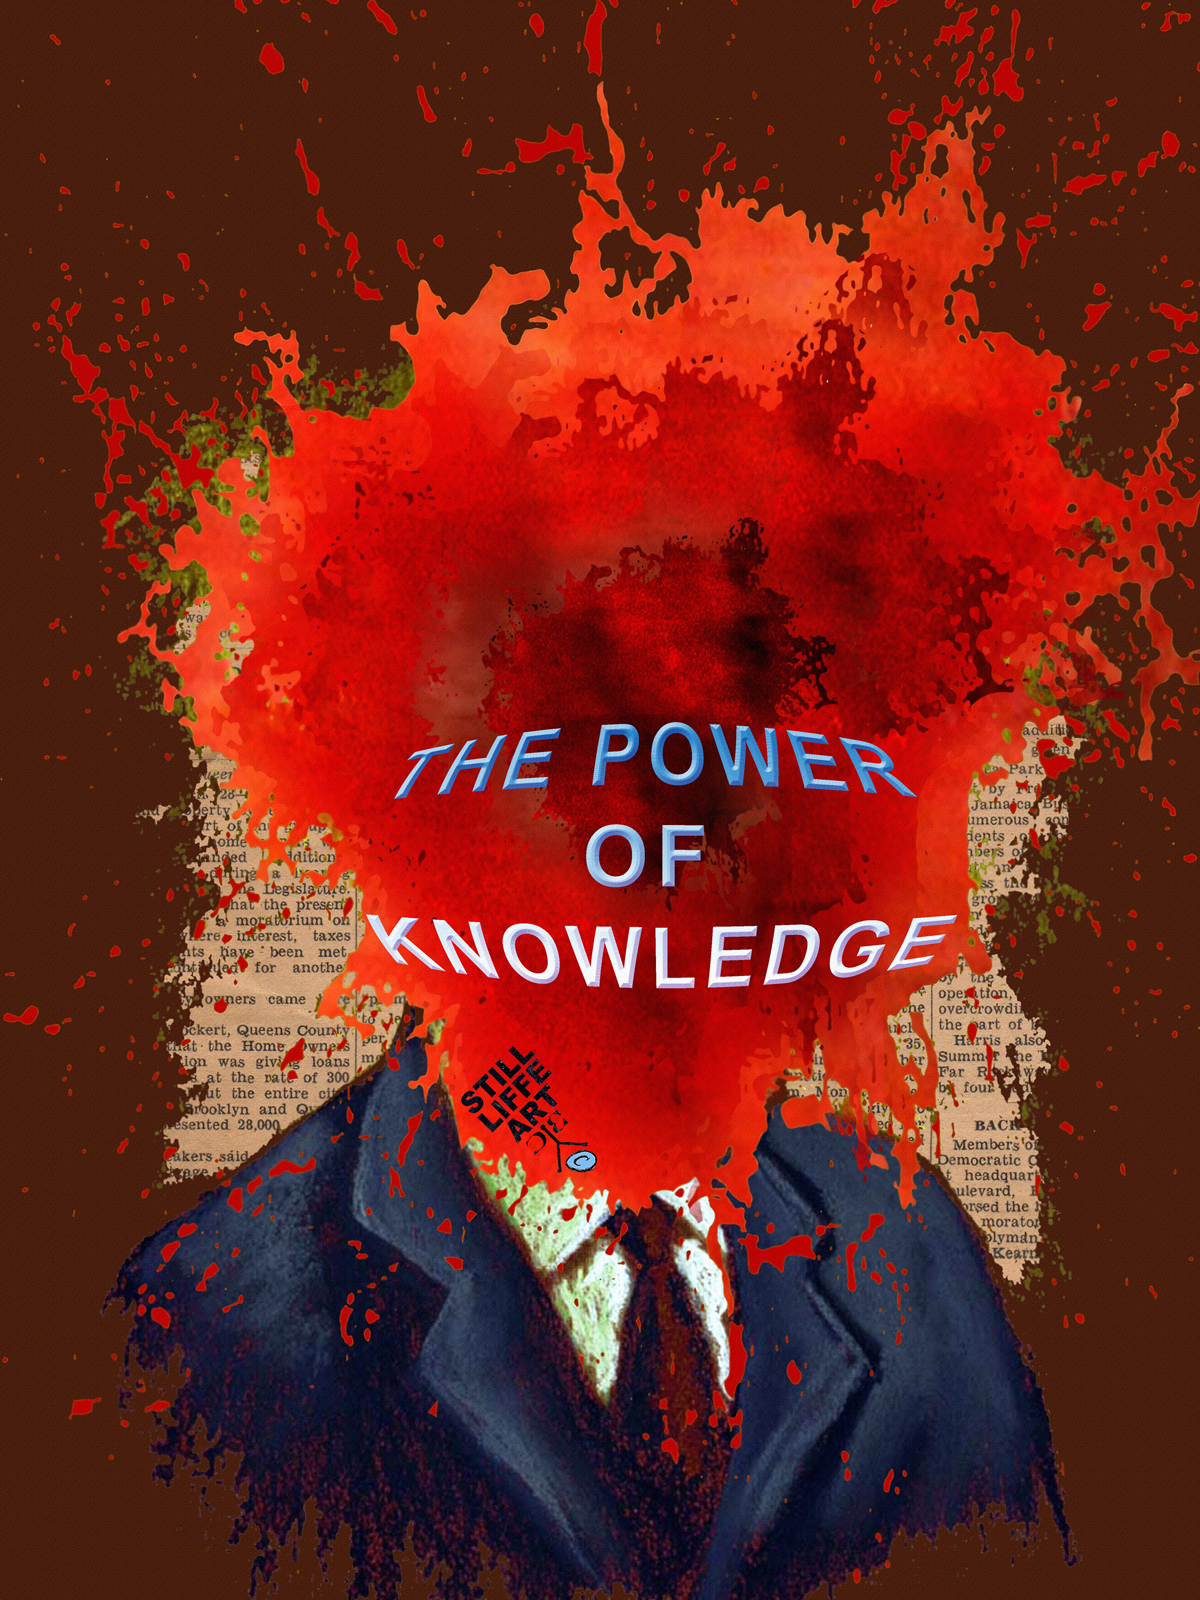 the power of knowlegde The power of knowledge is the power to see beyond deception, the power to block inquiry, the power to know things that others cannot see, the power to maintain your integrity, the power to discern danger and the power to recognize a true friend and ally.